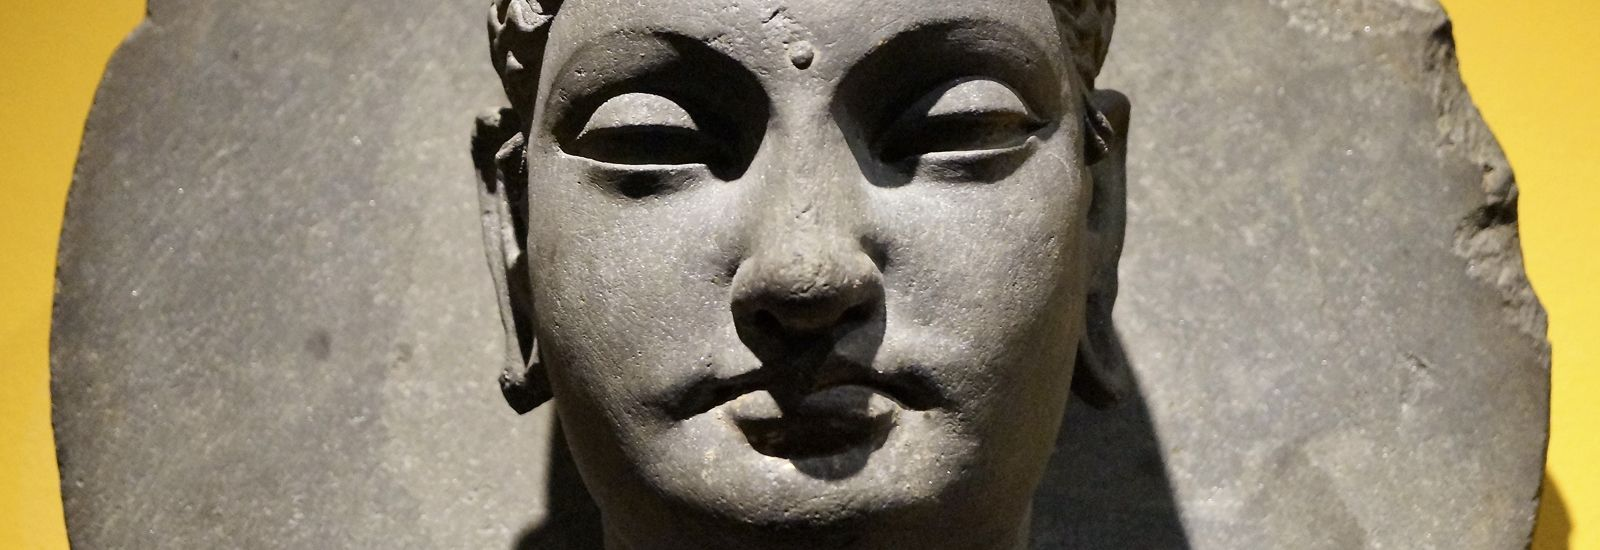 Close up of a stone carving of a face